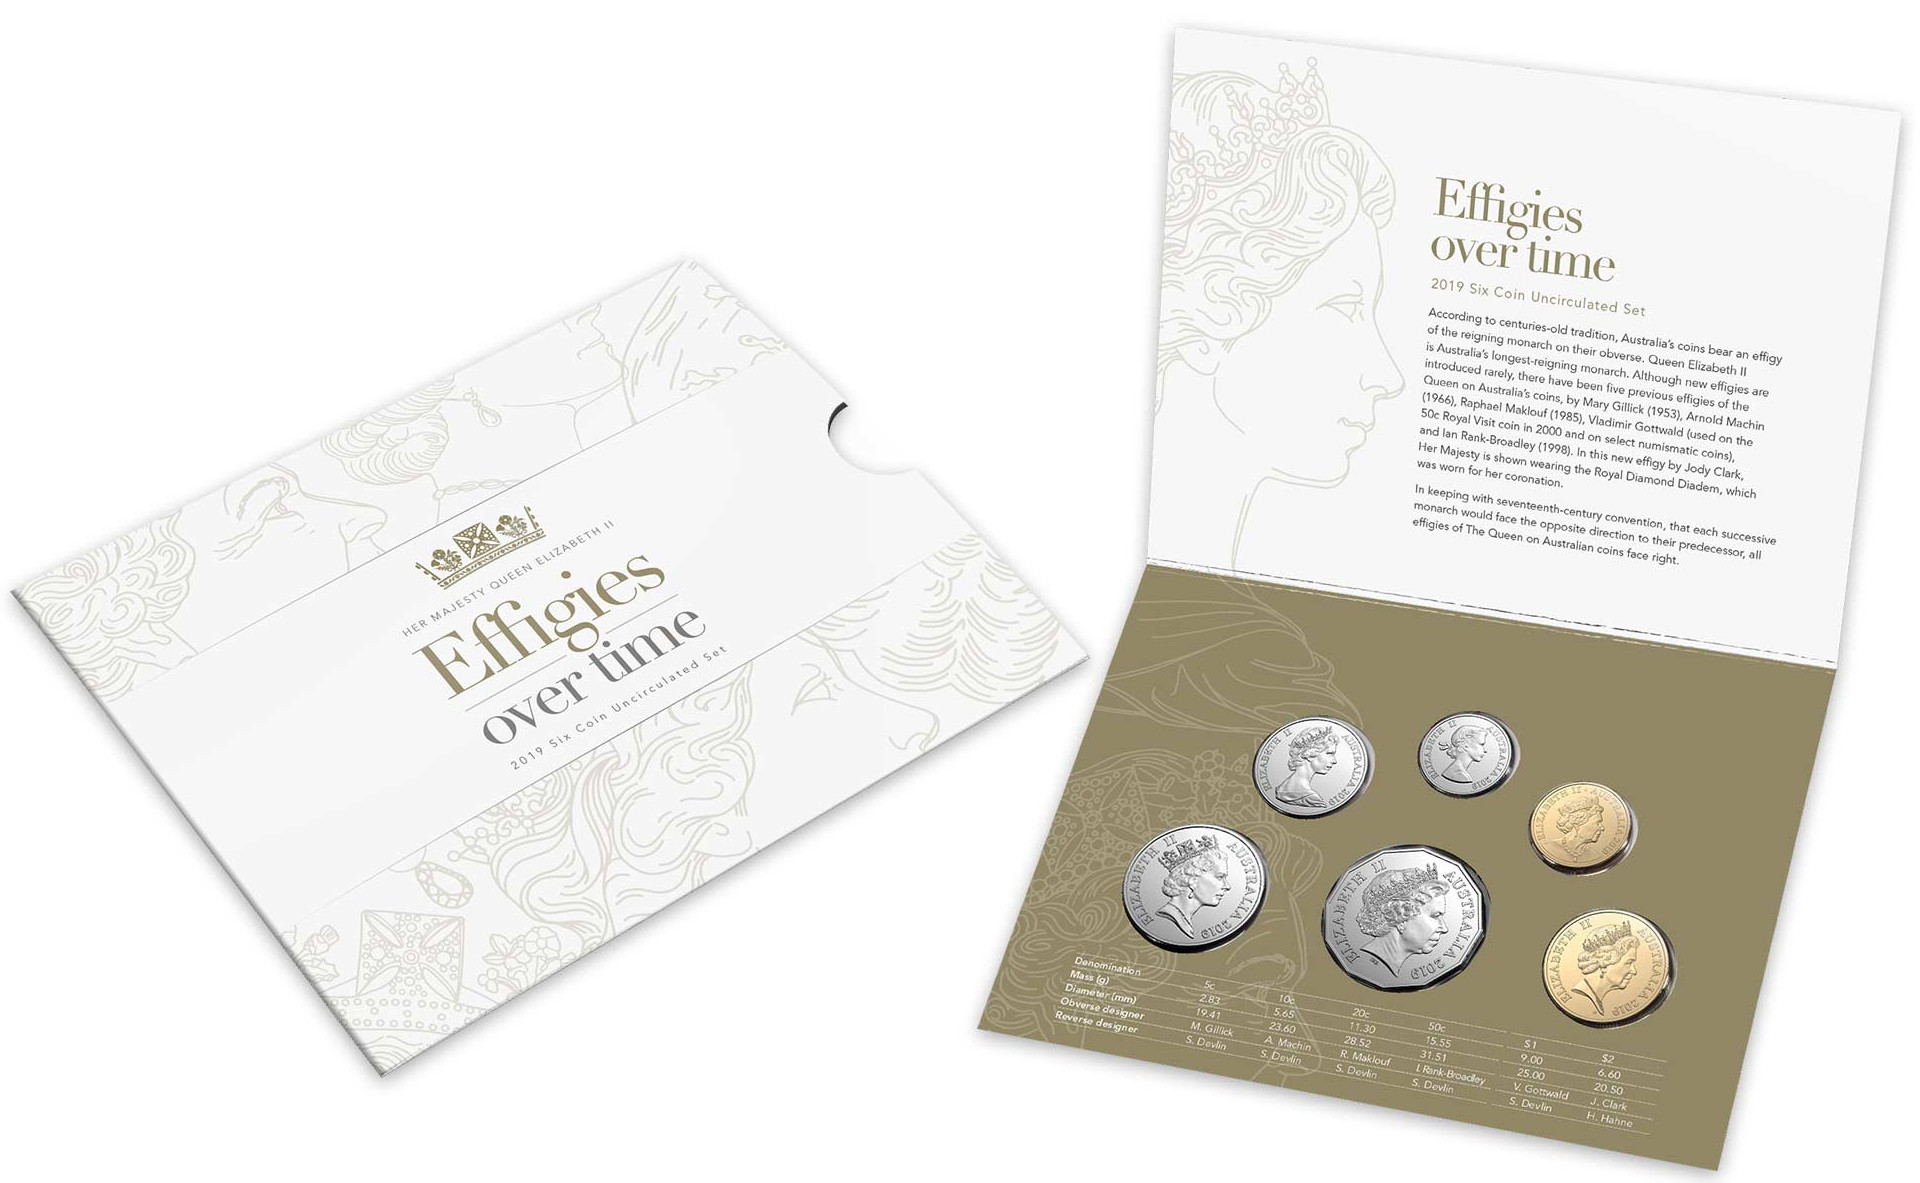 One Dollar 2019 (Gottwald Portrait): Photo Effigies Over Time - 2019 Six Coin Uncirculated Set